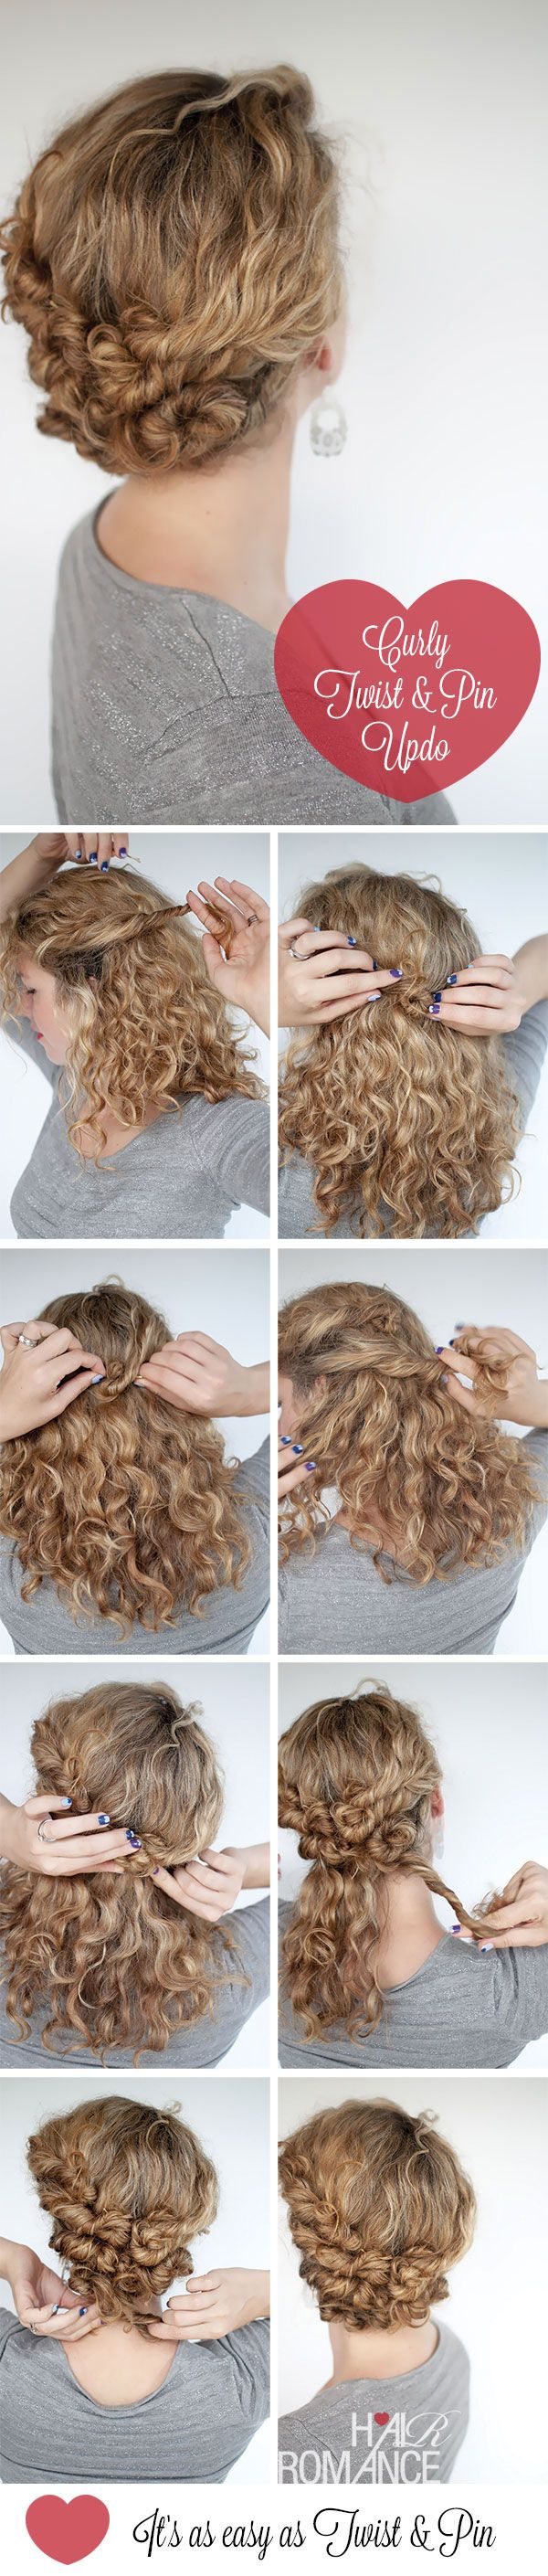 Hair Romance - curly Twist and Pin hairstyle tutorial